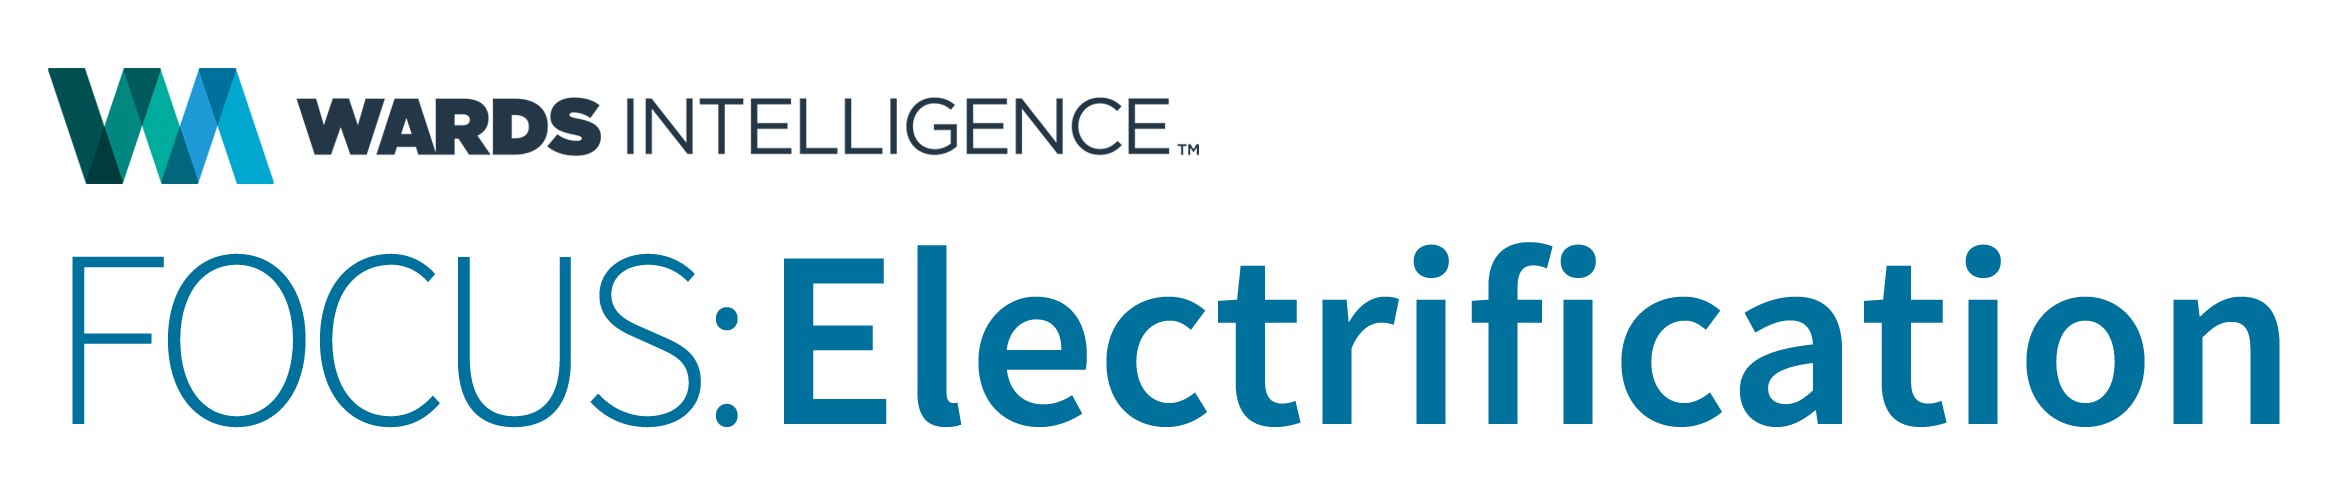 Focus: Electrification